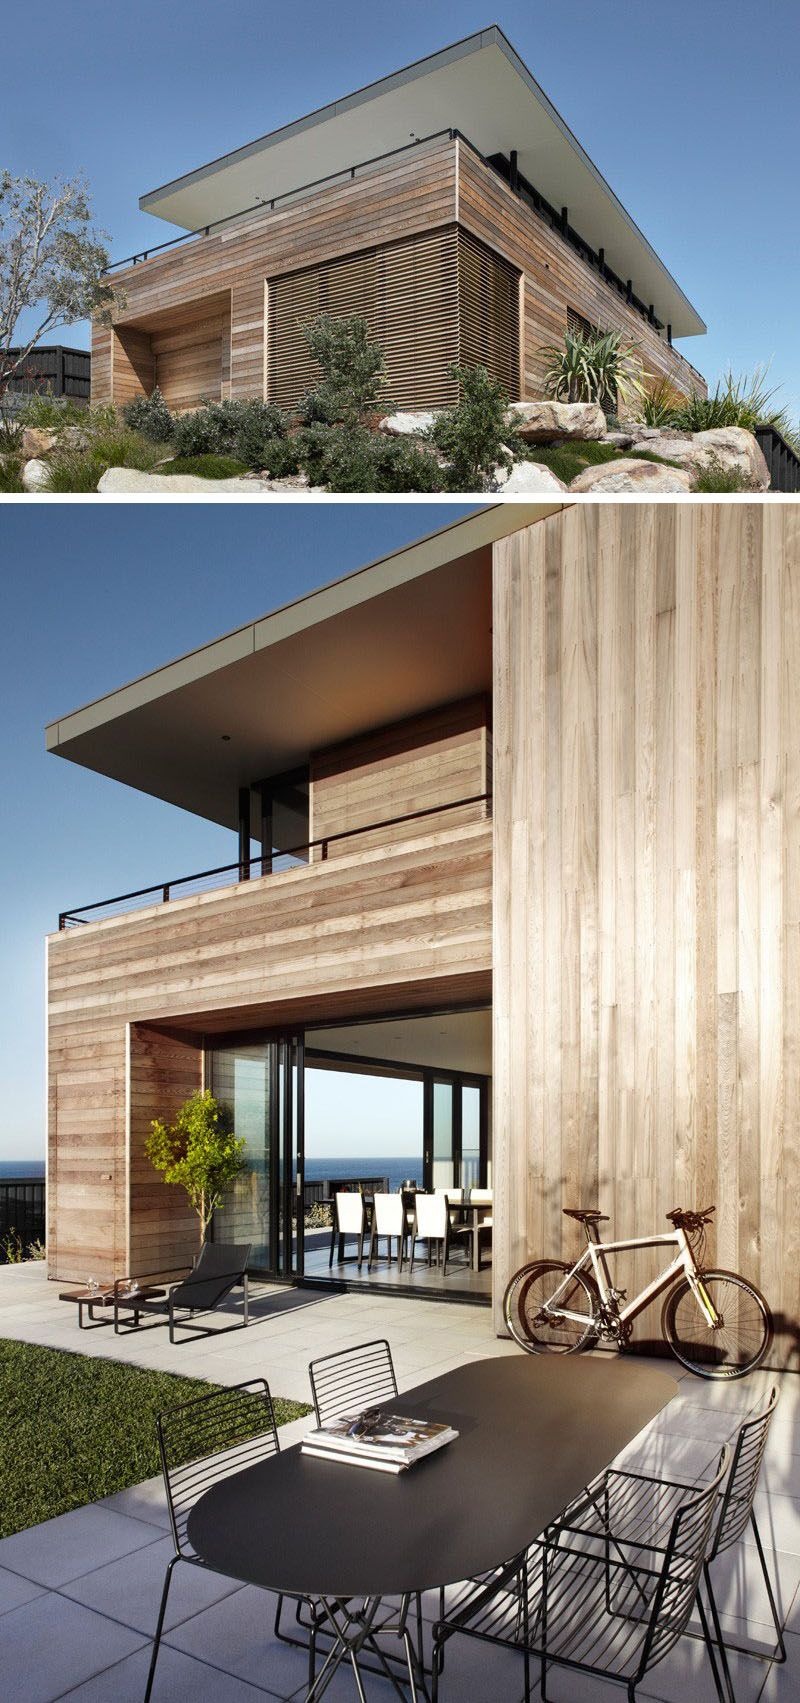 14 Examples Of Modern Beach Houses // Light Wood Paneling Covers The  Exterior Of The Australian Beach House That Opens Up Wide To Show Off The  Incredible ...